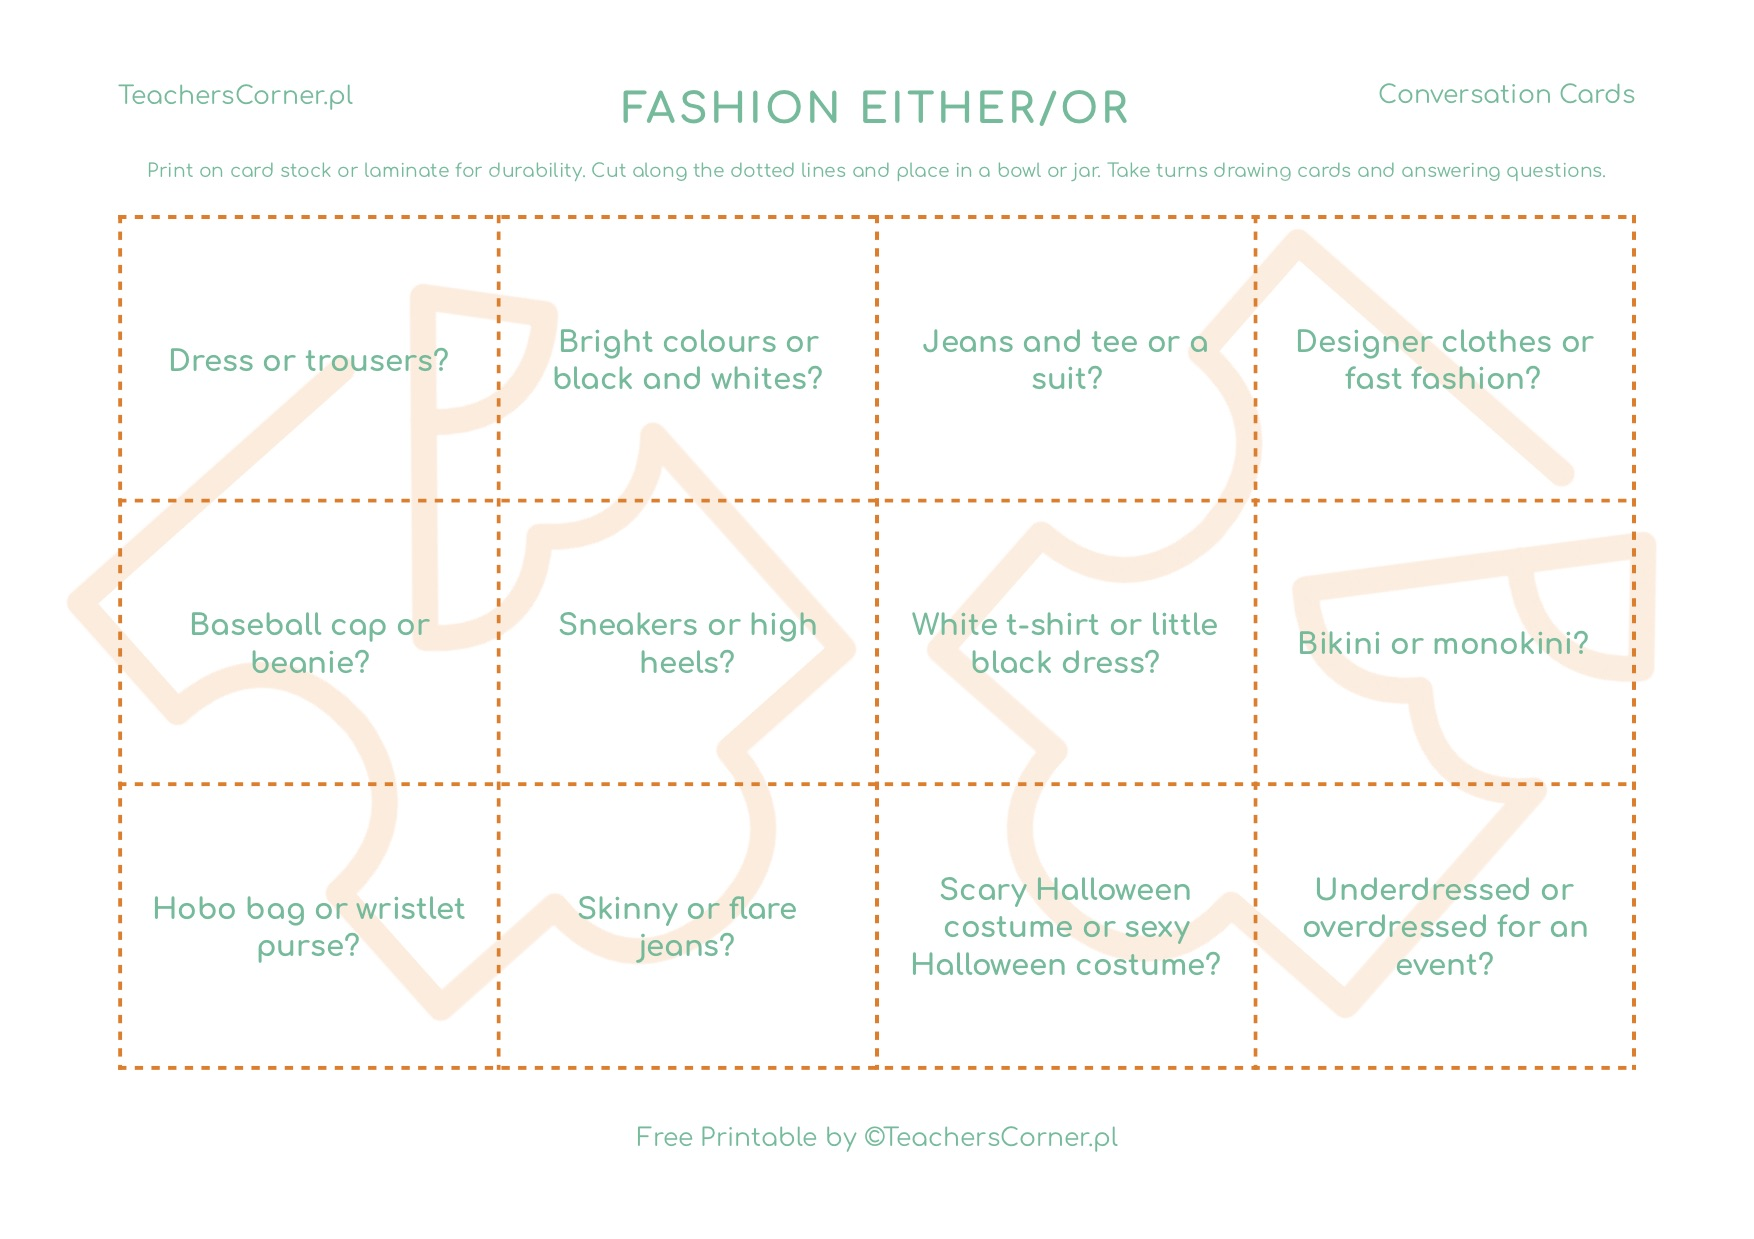 Fashion Either Or Conversation Cards